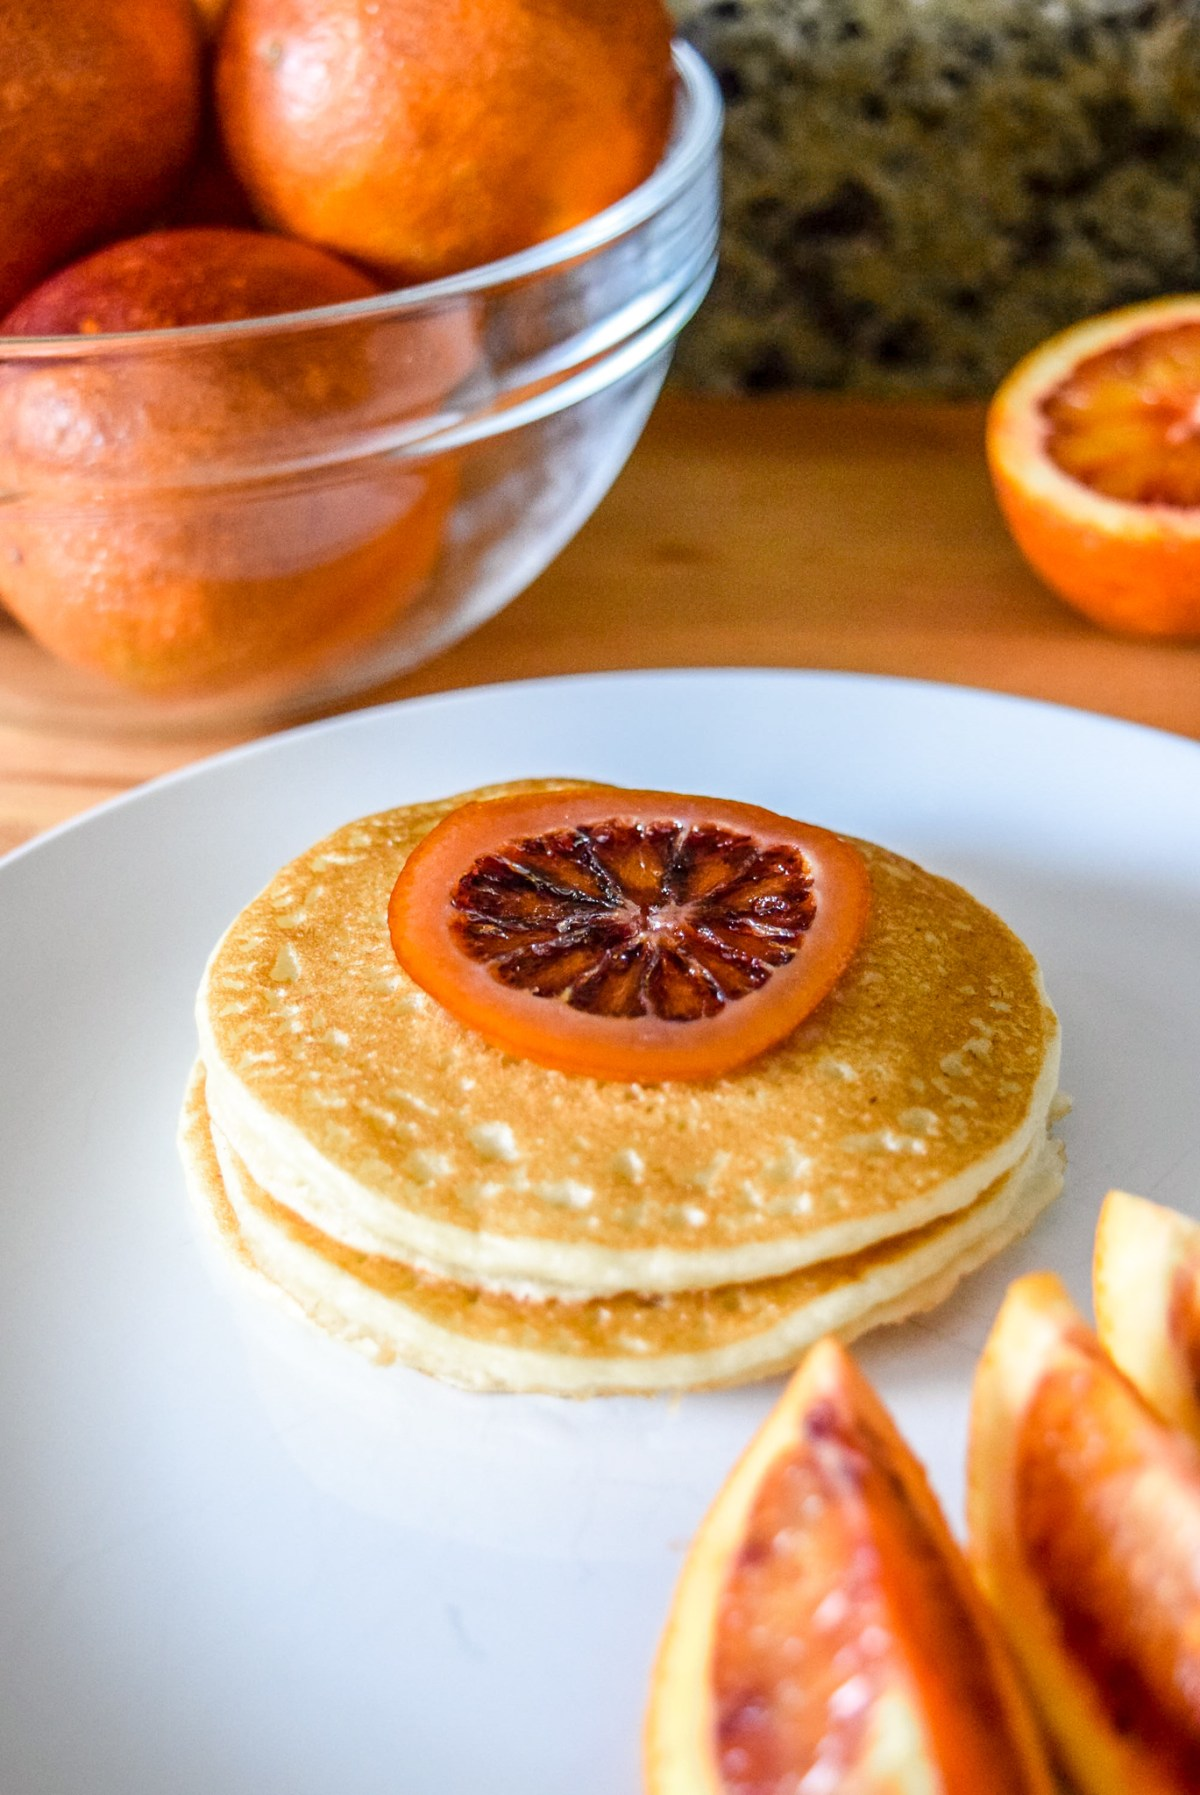 Trader Joe's frozen pancakes with blood orange slices and candied blood orange round from front up close